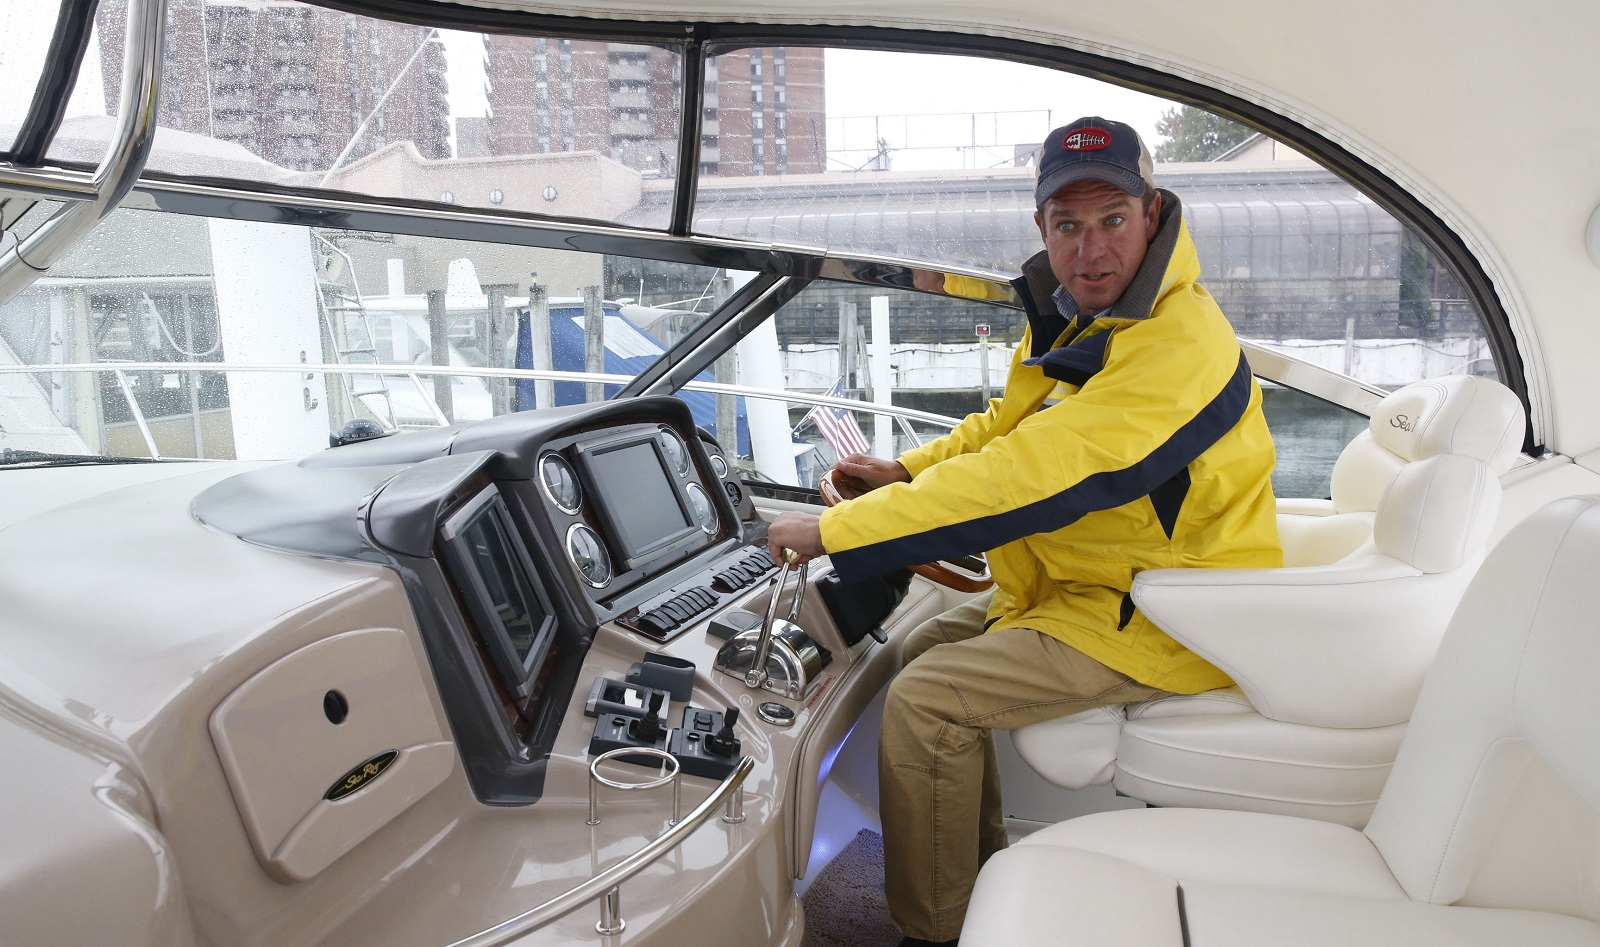 Tucker Curtin steers his 45-foot yacht, which will seat six customers but also can dock to serve customers on shore. (Robert Kirkham/Buffalo News)